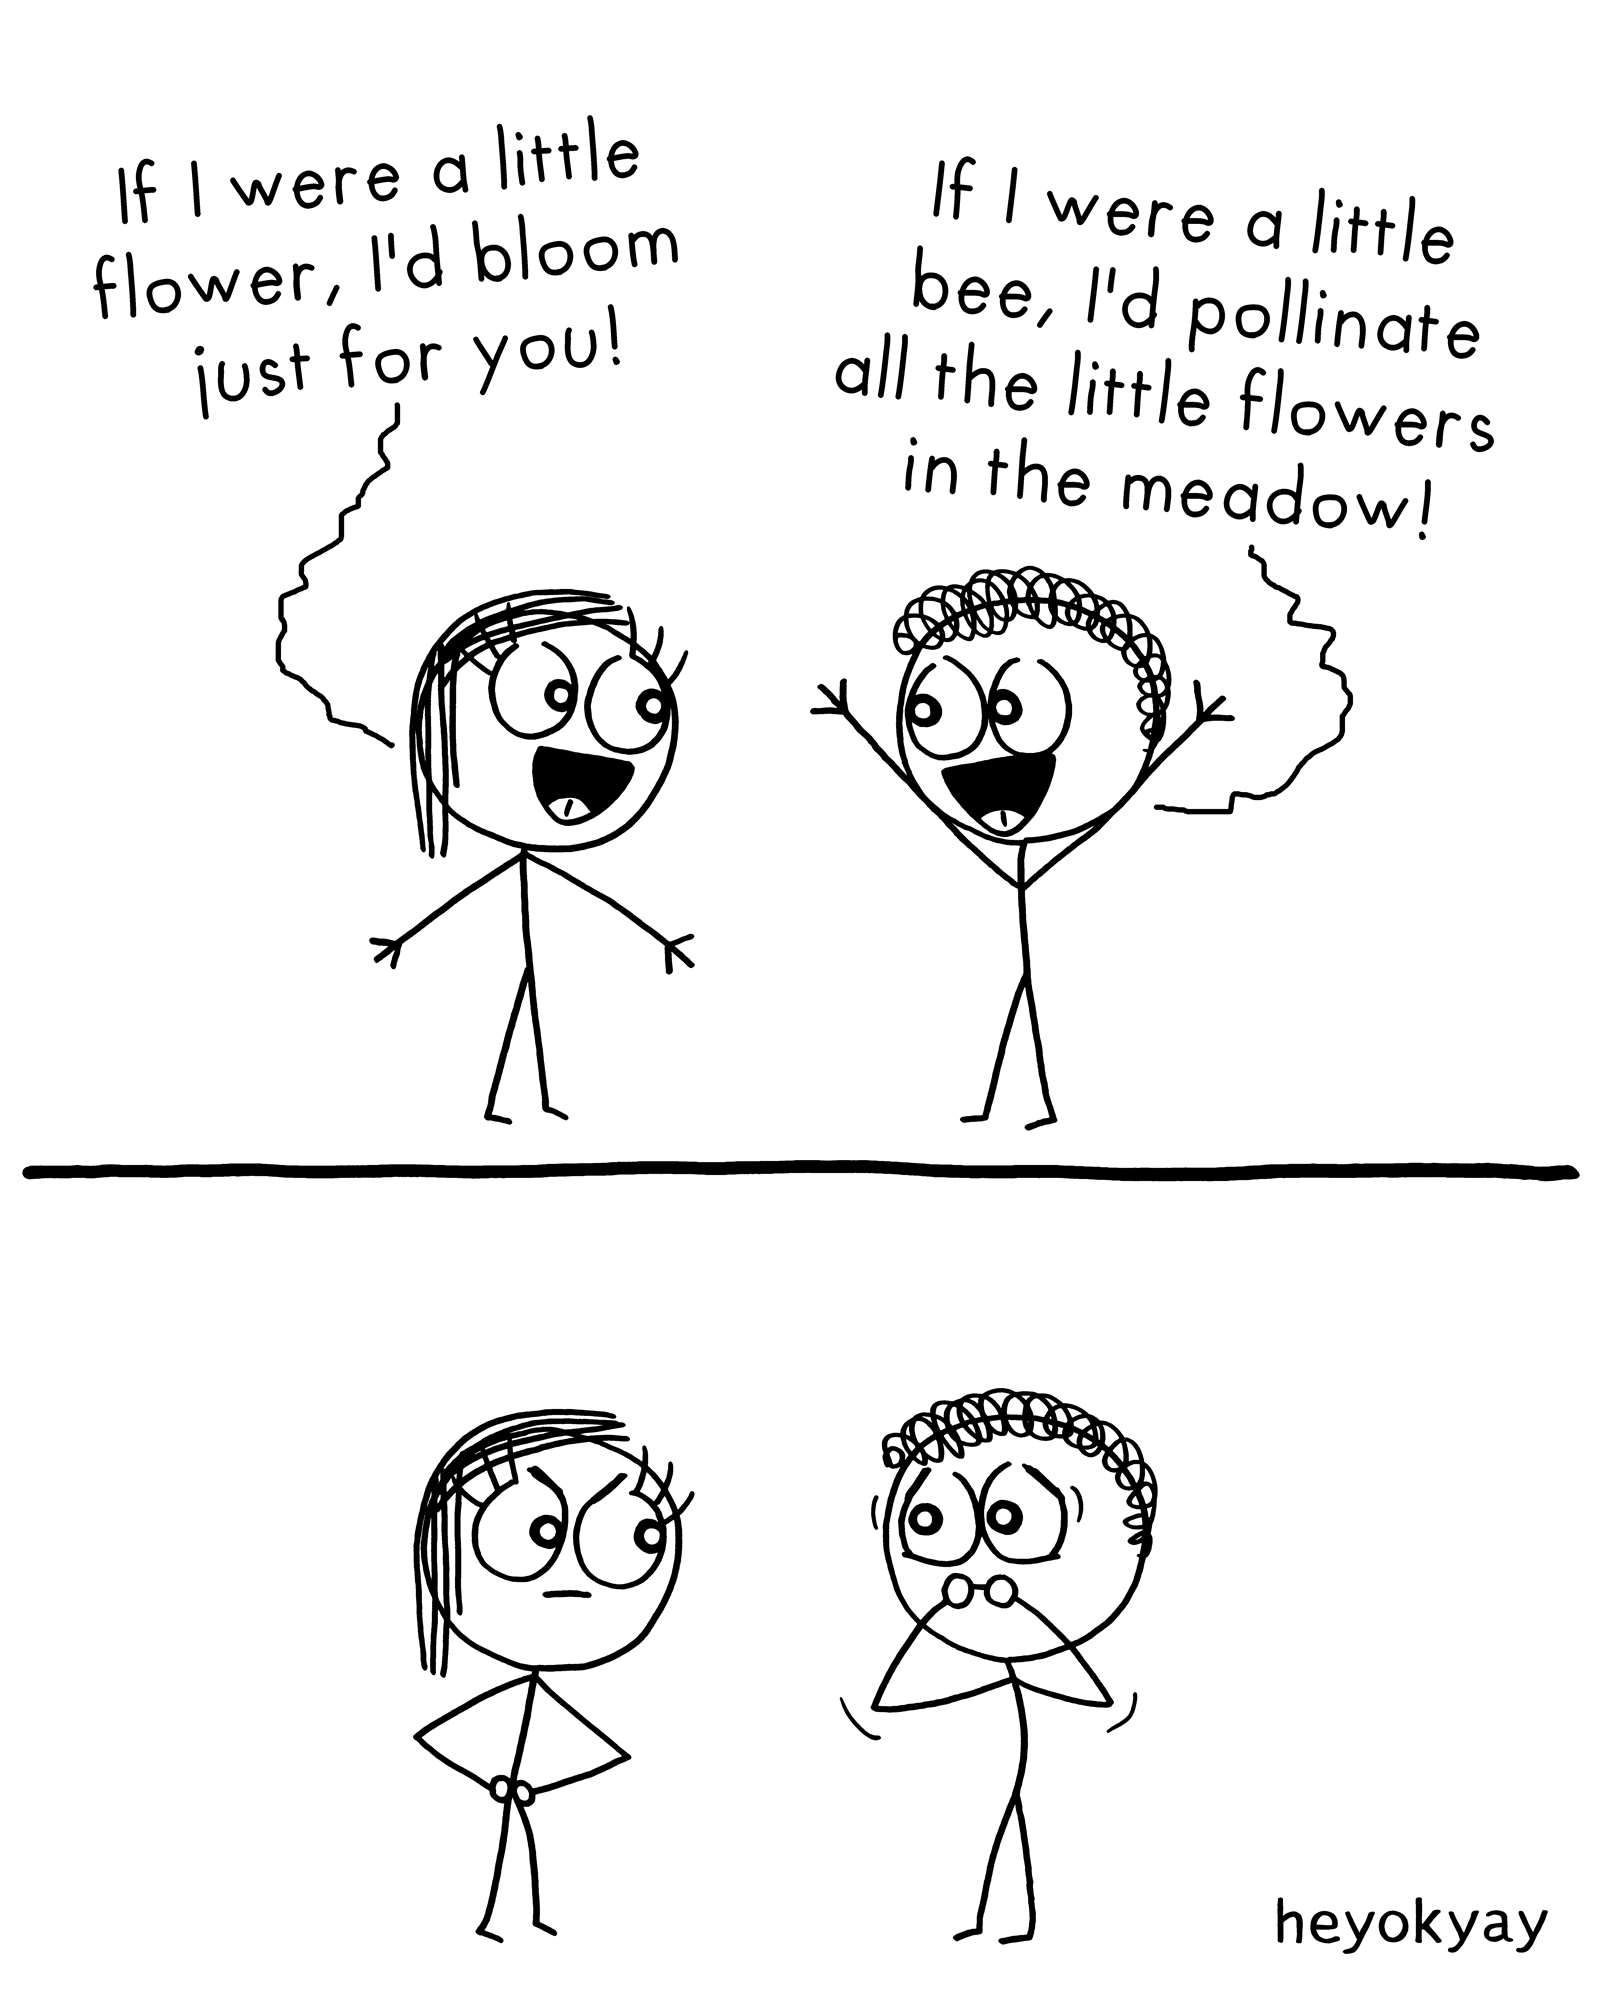 If I were a little flower, I'd bloom just for you! If I were a little bee, I'd pollinate all the little flowers in the meadow! Flower / Bee heyokyay comic